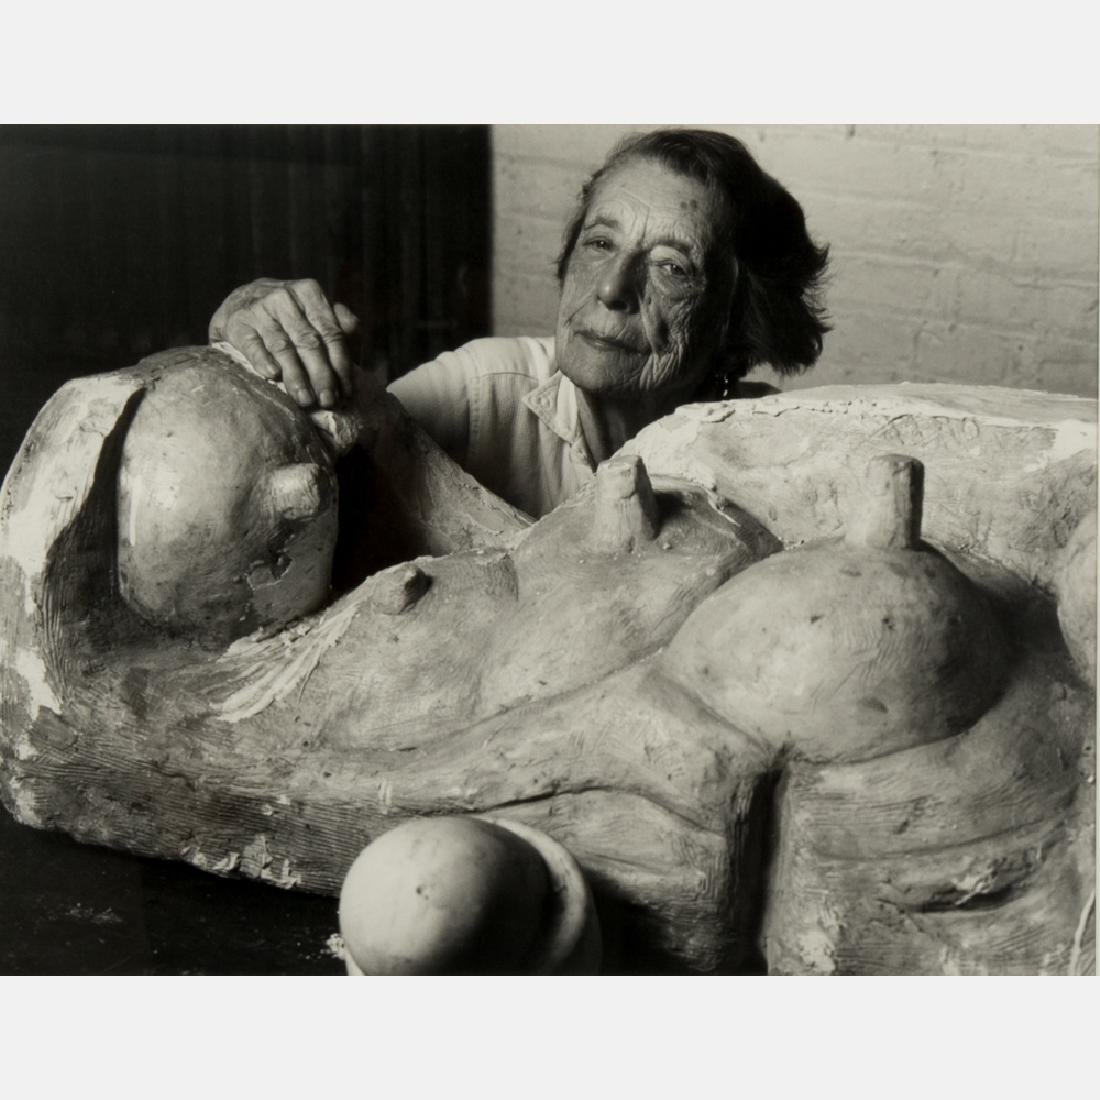 Abe Frajndlich (b. 1946) Louise Bourgeois, Brooklyn,